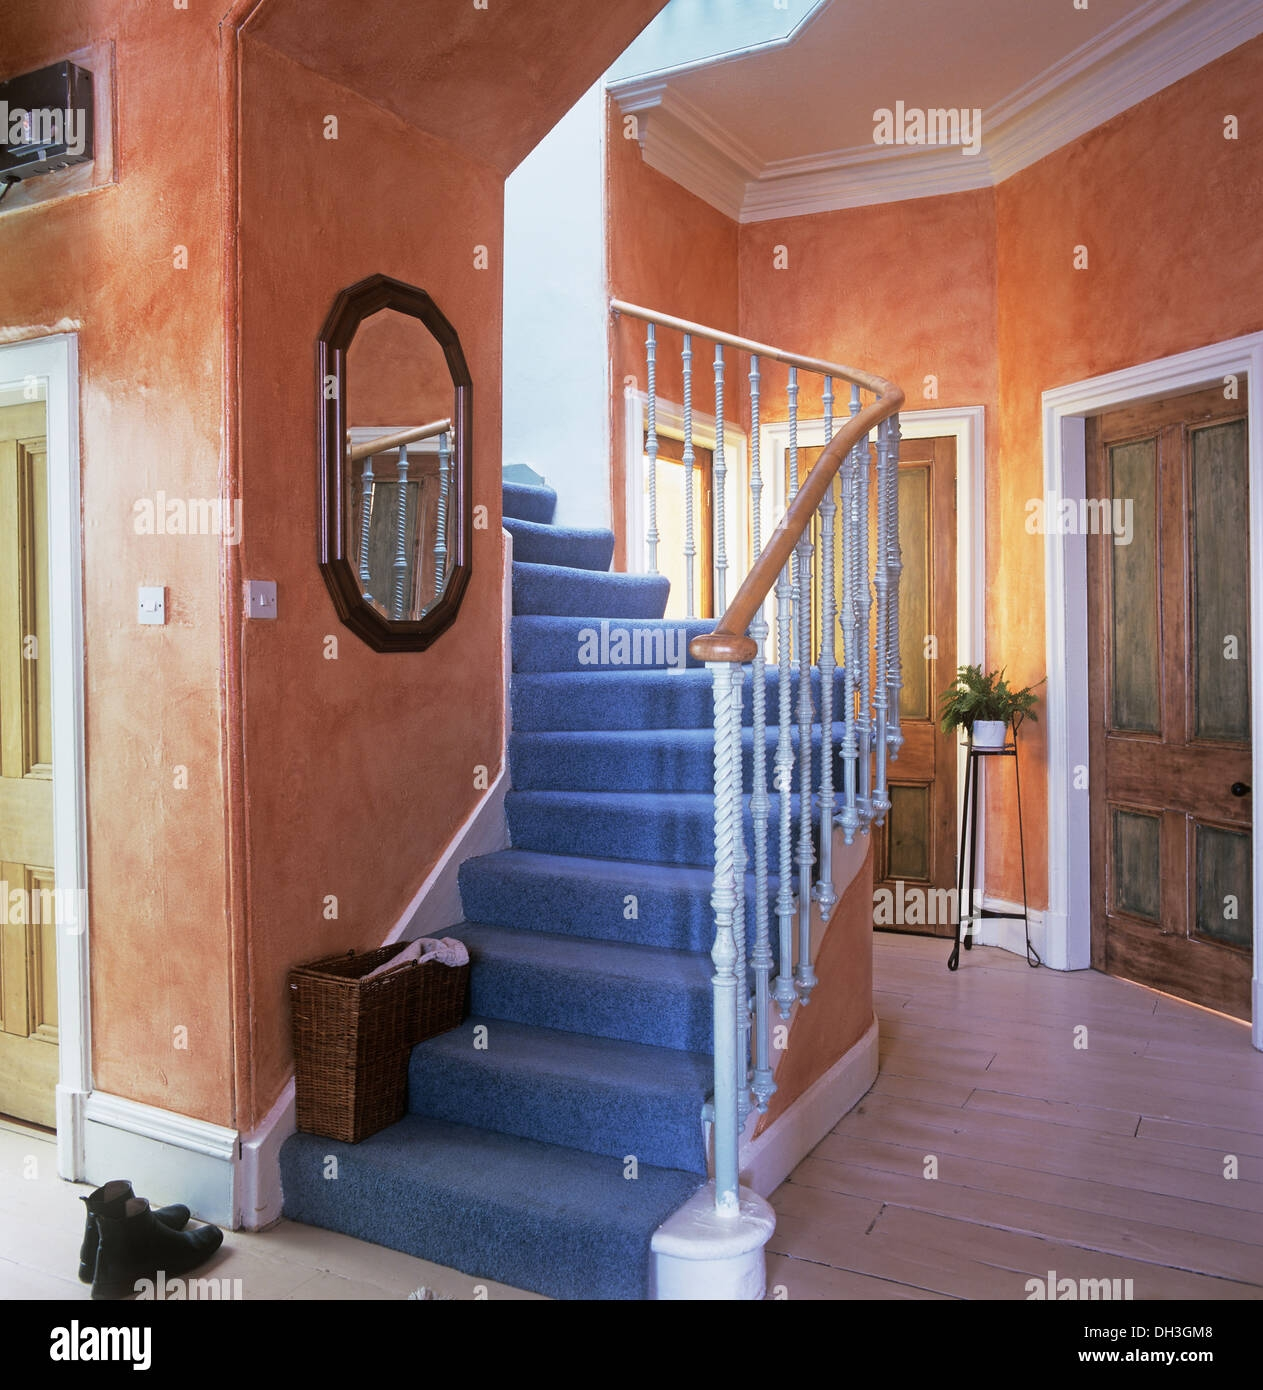 Blue Carpet On Staircase In Pale Orange Sponging Effect Hall With   Blue Carpet On Stairs   Wooden   Grey Stair White Wall   Antelope   Geometric   Gray